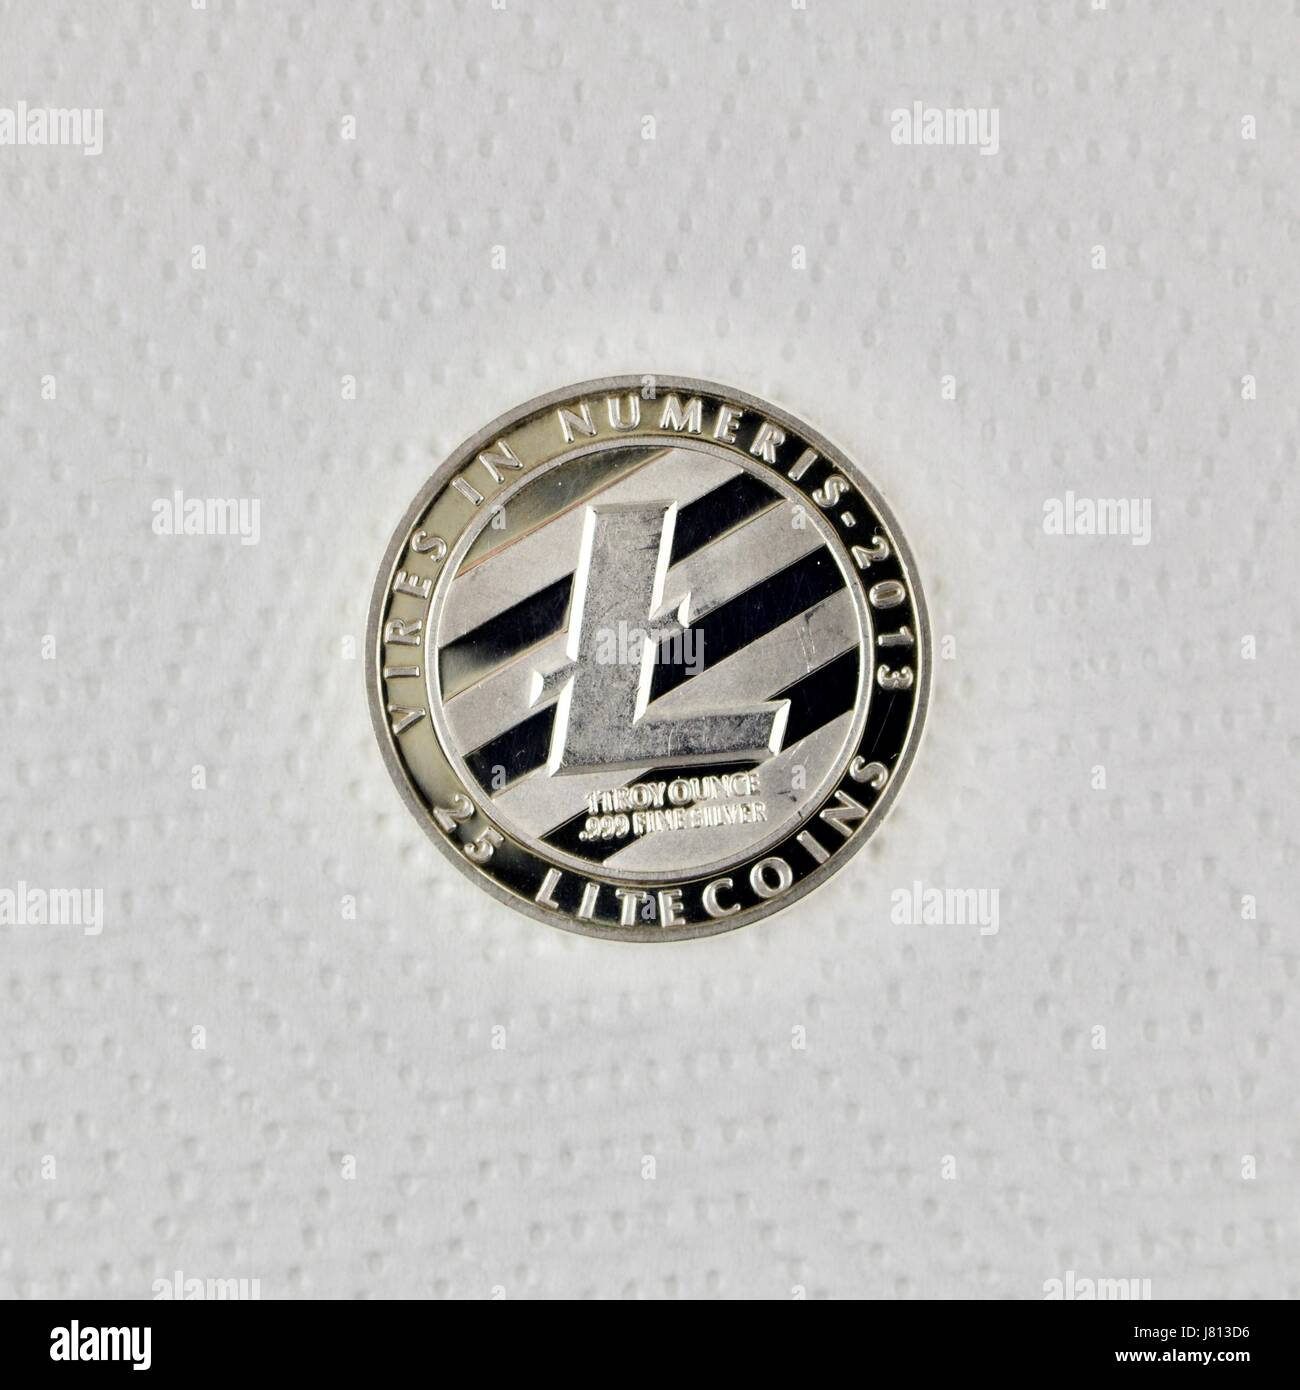 Digital coin stock - COIN Stock Quote - WINKLEVOSS BITCOIN